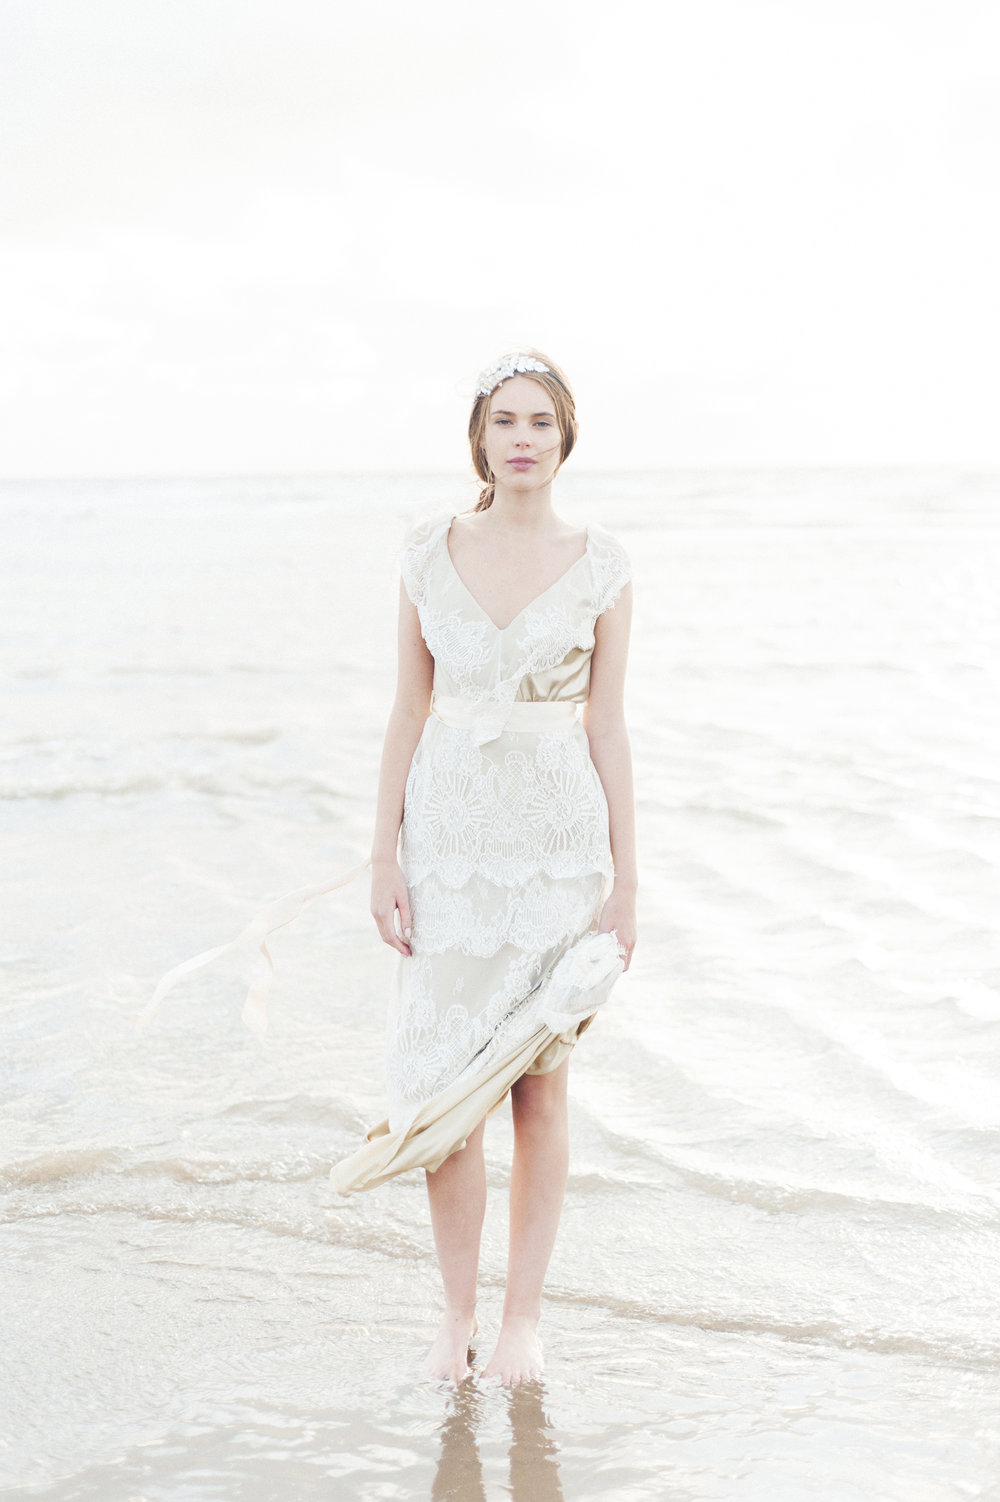 Kate-Beaumont-Wedding-Dresses-Formby-Beach-Emma-Pilkington-26.jpg